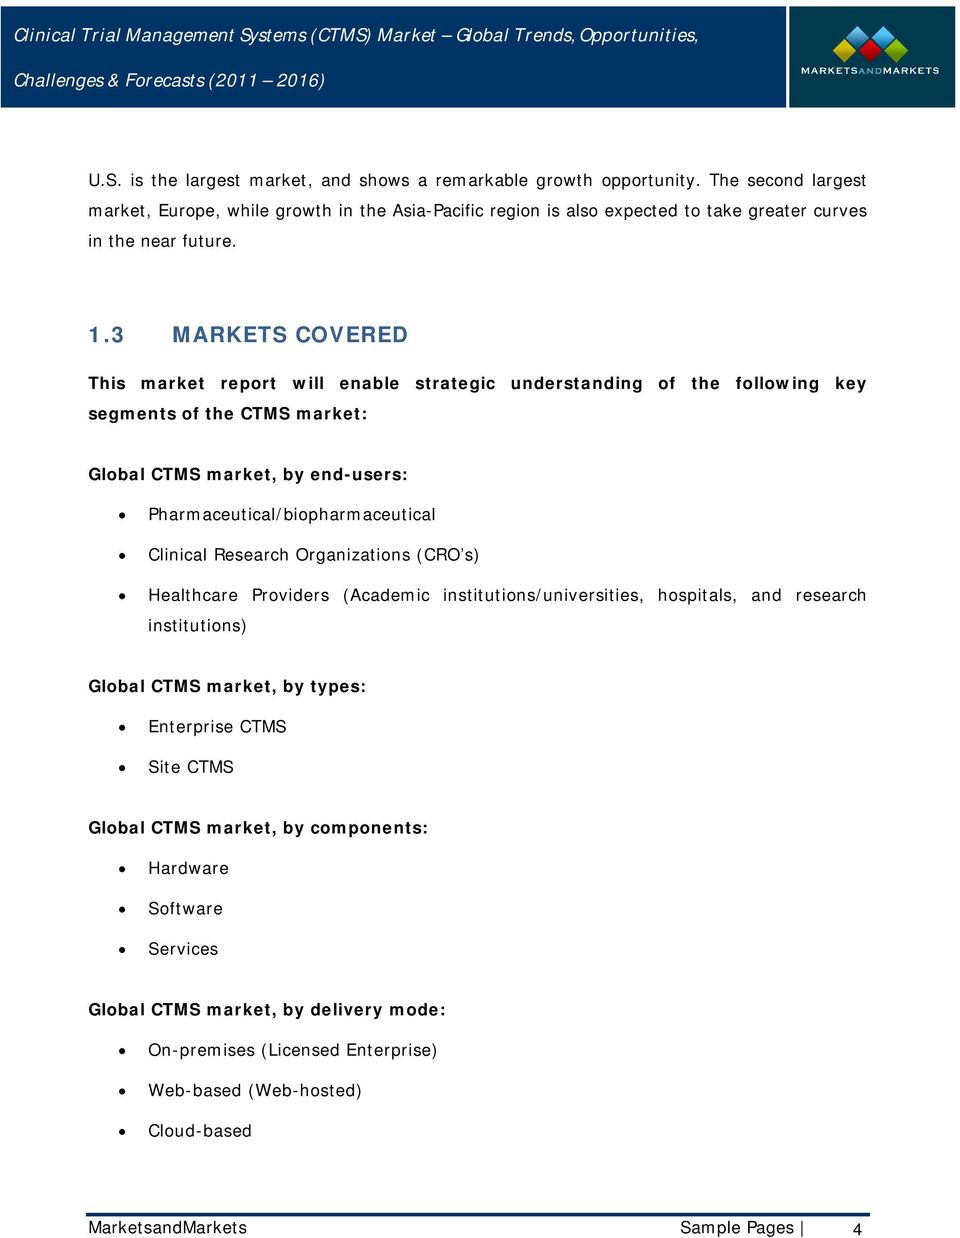 3 MARKETS COVERED This market report will enable strategic understanding of the following key segments of the CTMS market: Global CTMS market, by end-users: Pharmaceutical/biopharmaceutical